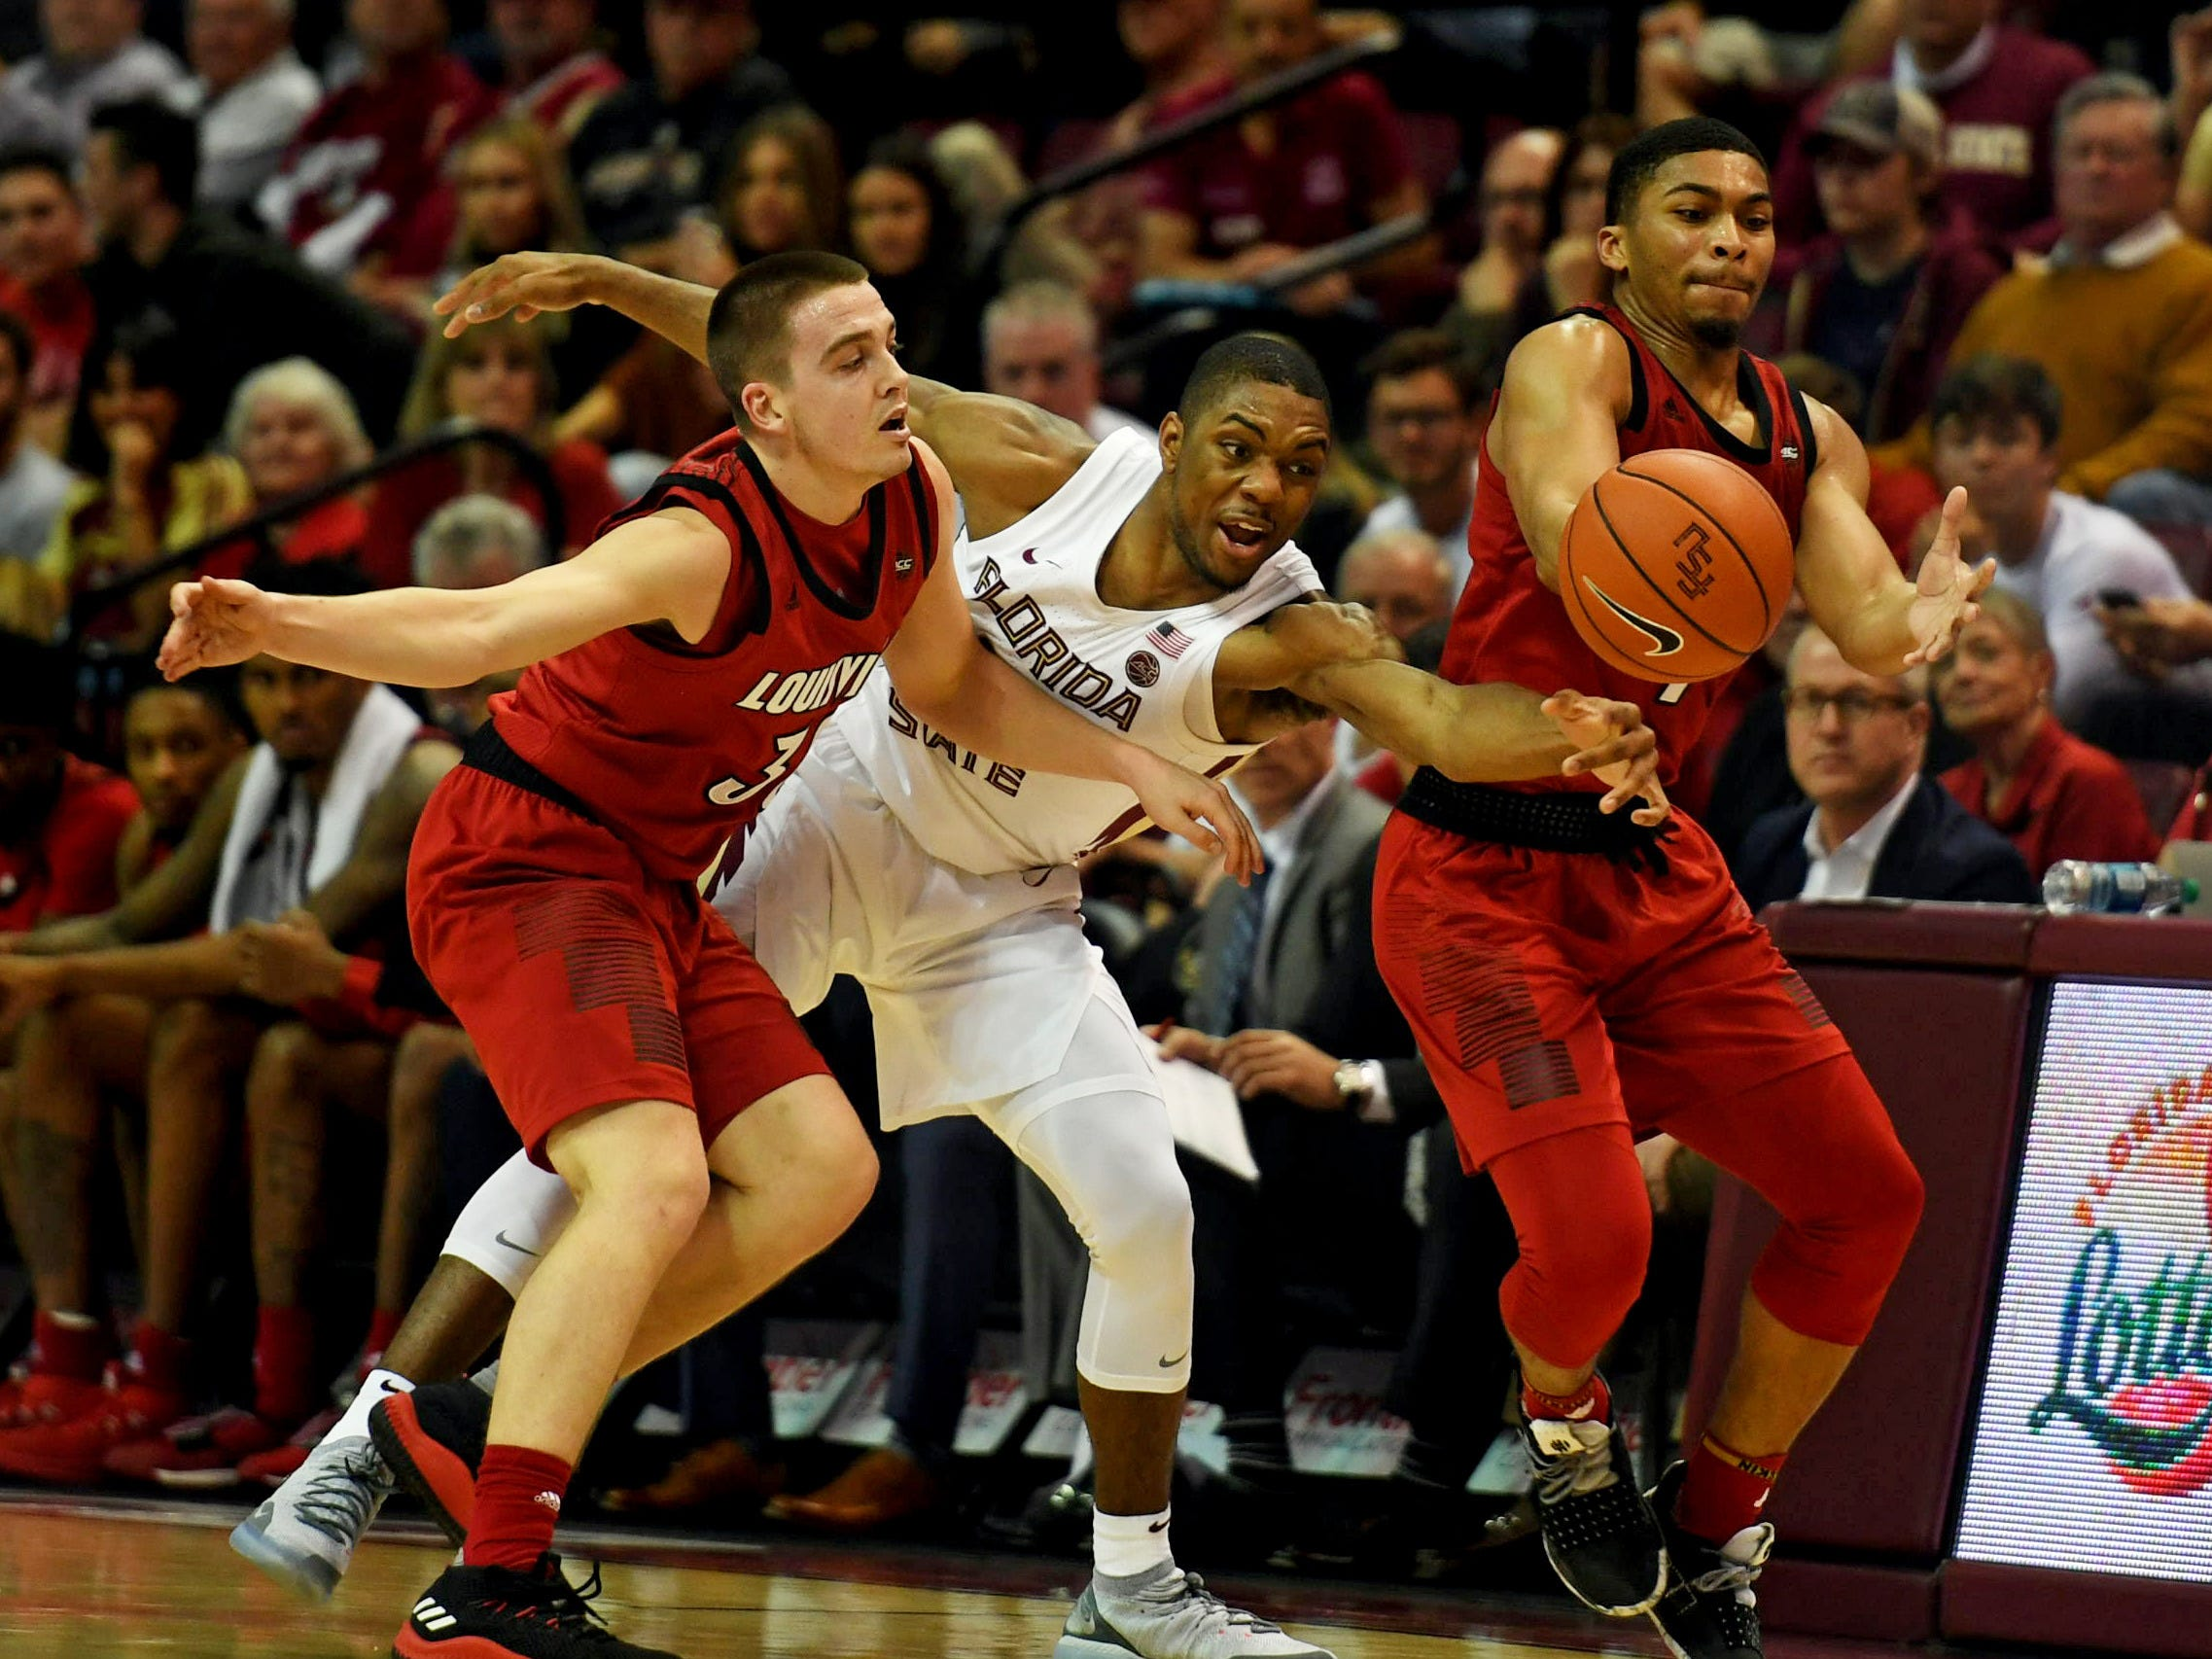 Louisville Cardinals guard Ryan McMahon (30) and guard Christen Cunningham (1) have the ball knocked away by Florida State Seminoles guard Trent Forrest (3) during the second half at Donald L. Tucker Center in Tallahassee, Florida, on Saturday, Feb. 9, 2019.